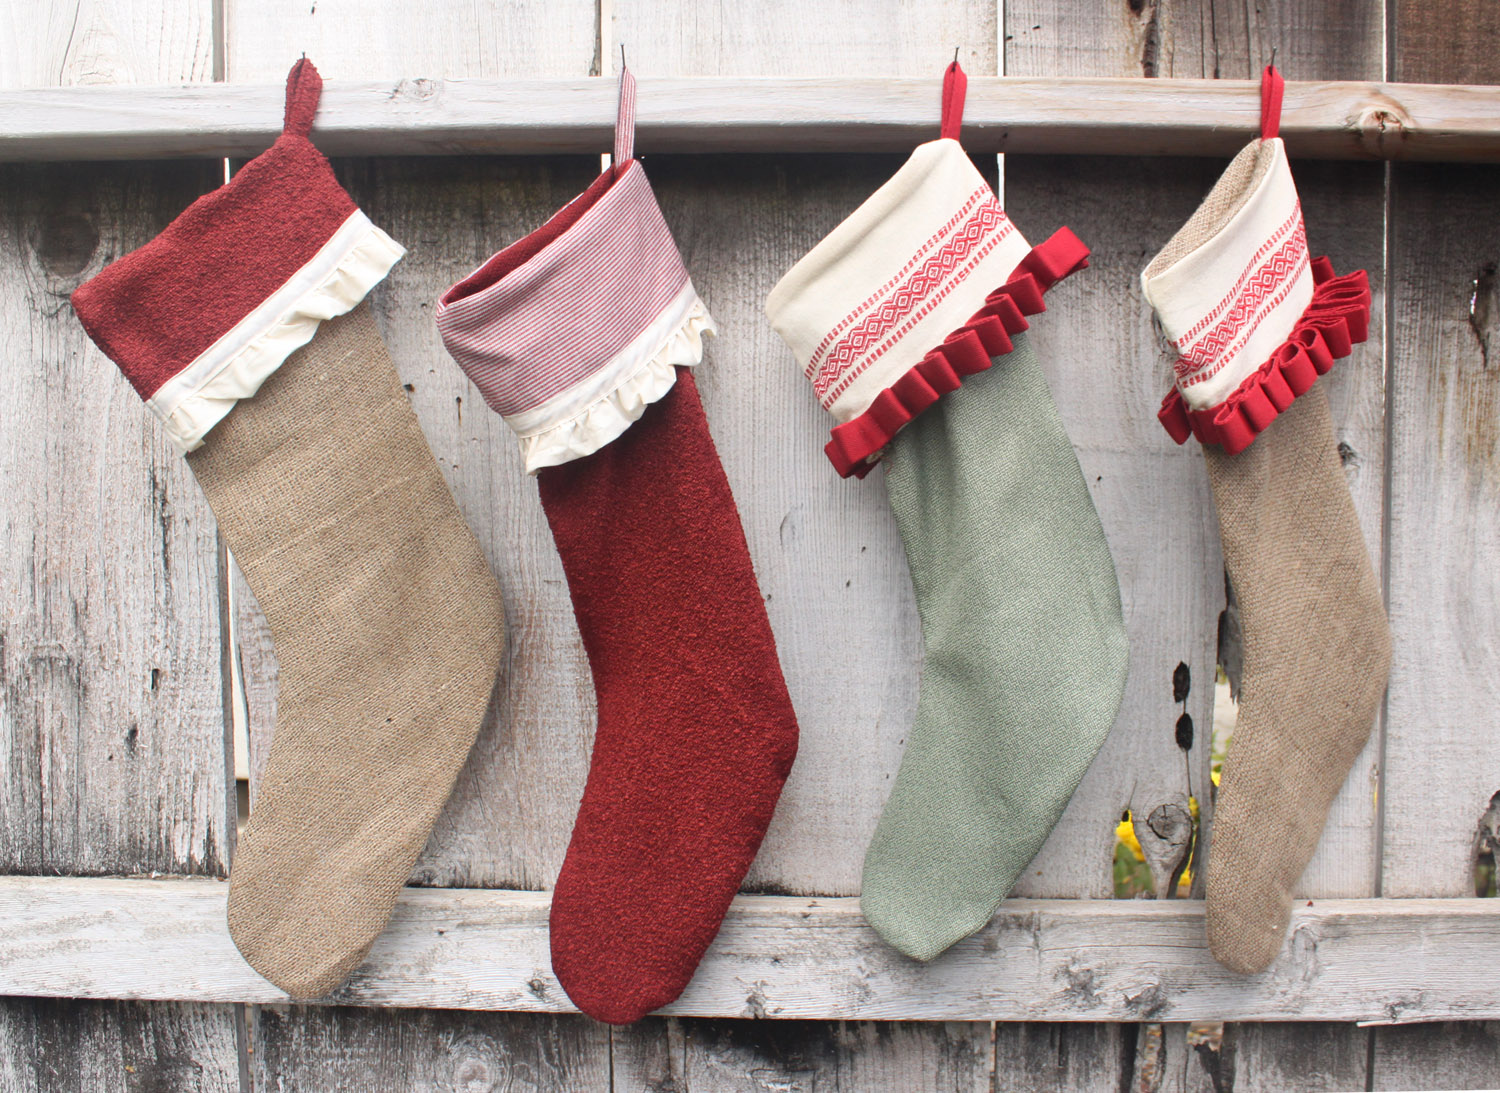 Brittany Stiles Handmade Stockings And Christmas Crafting